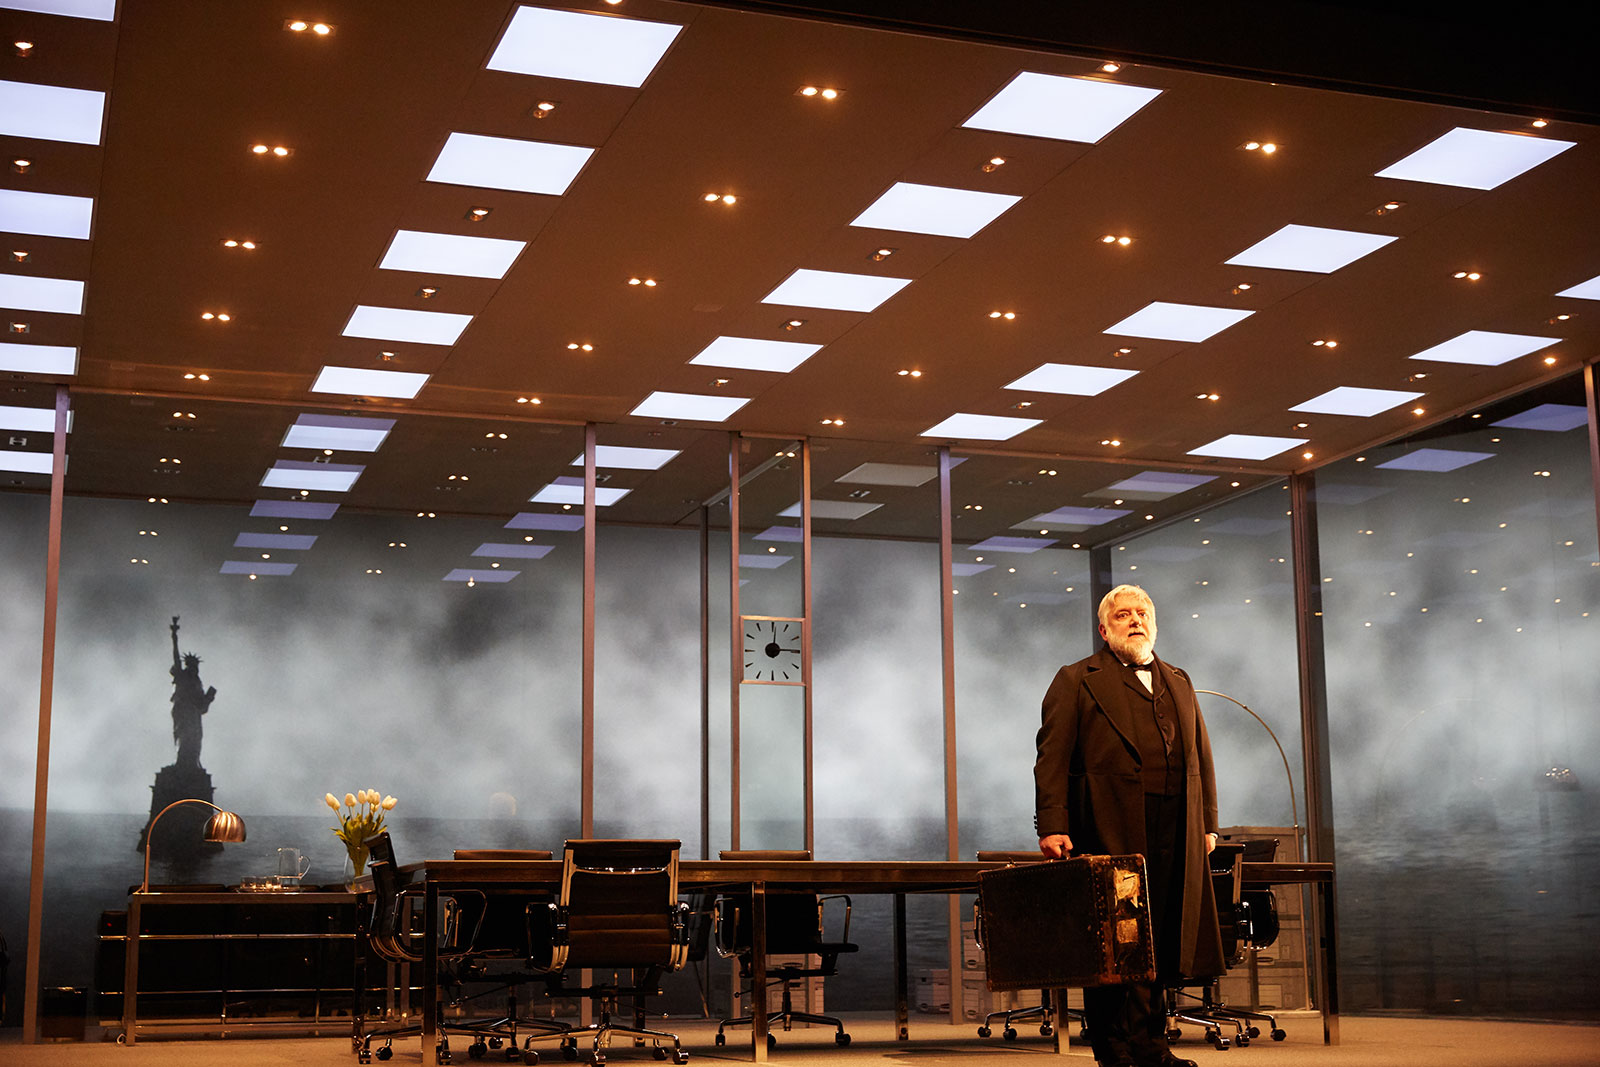 2.-the-lehman-trilogy-at-the-national-theatre.-photo-by-mark-douet.-_31b3567.jpg